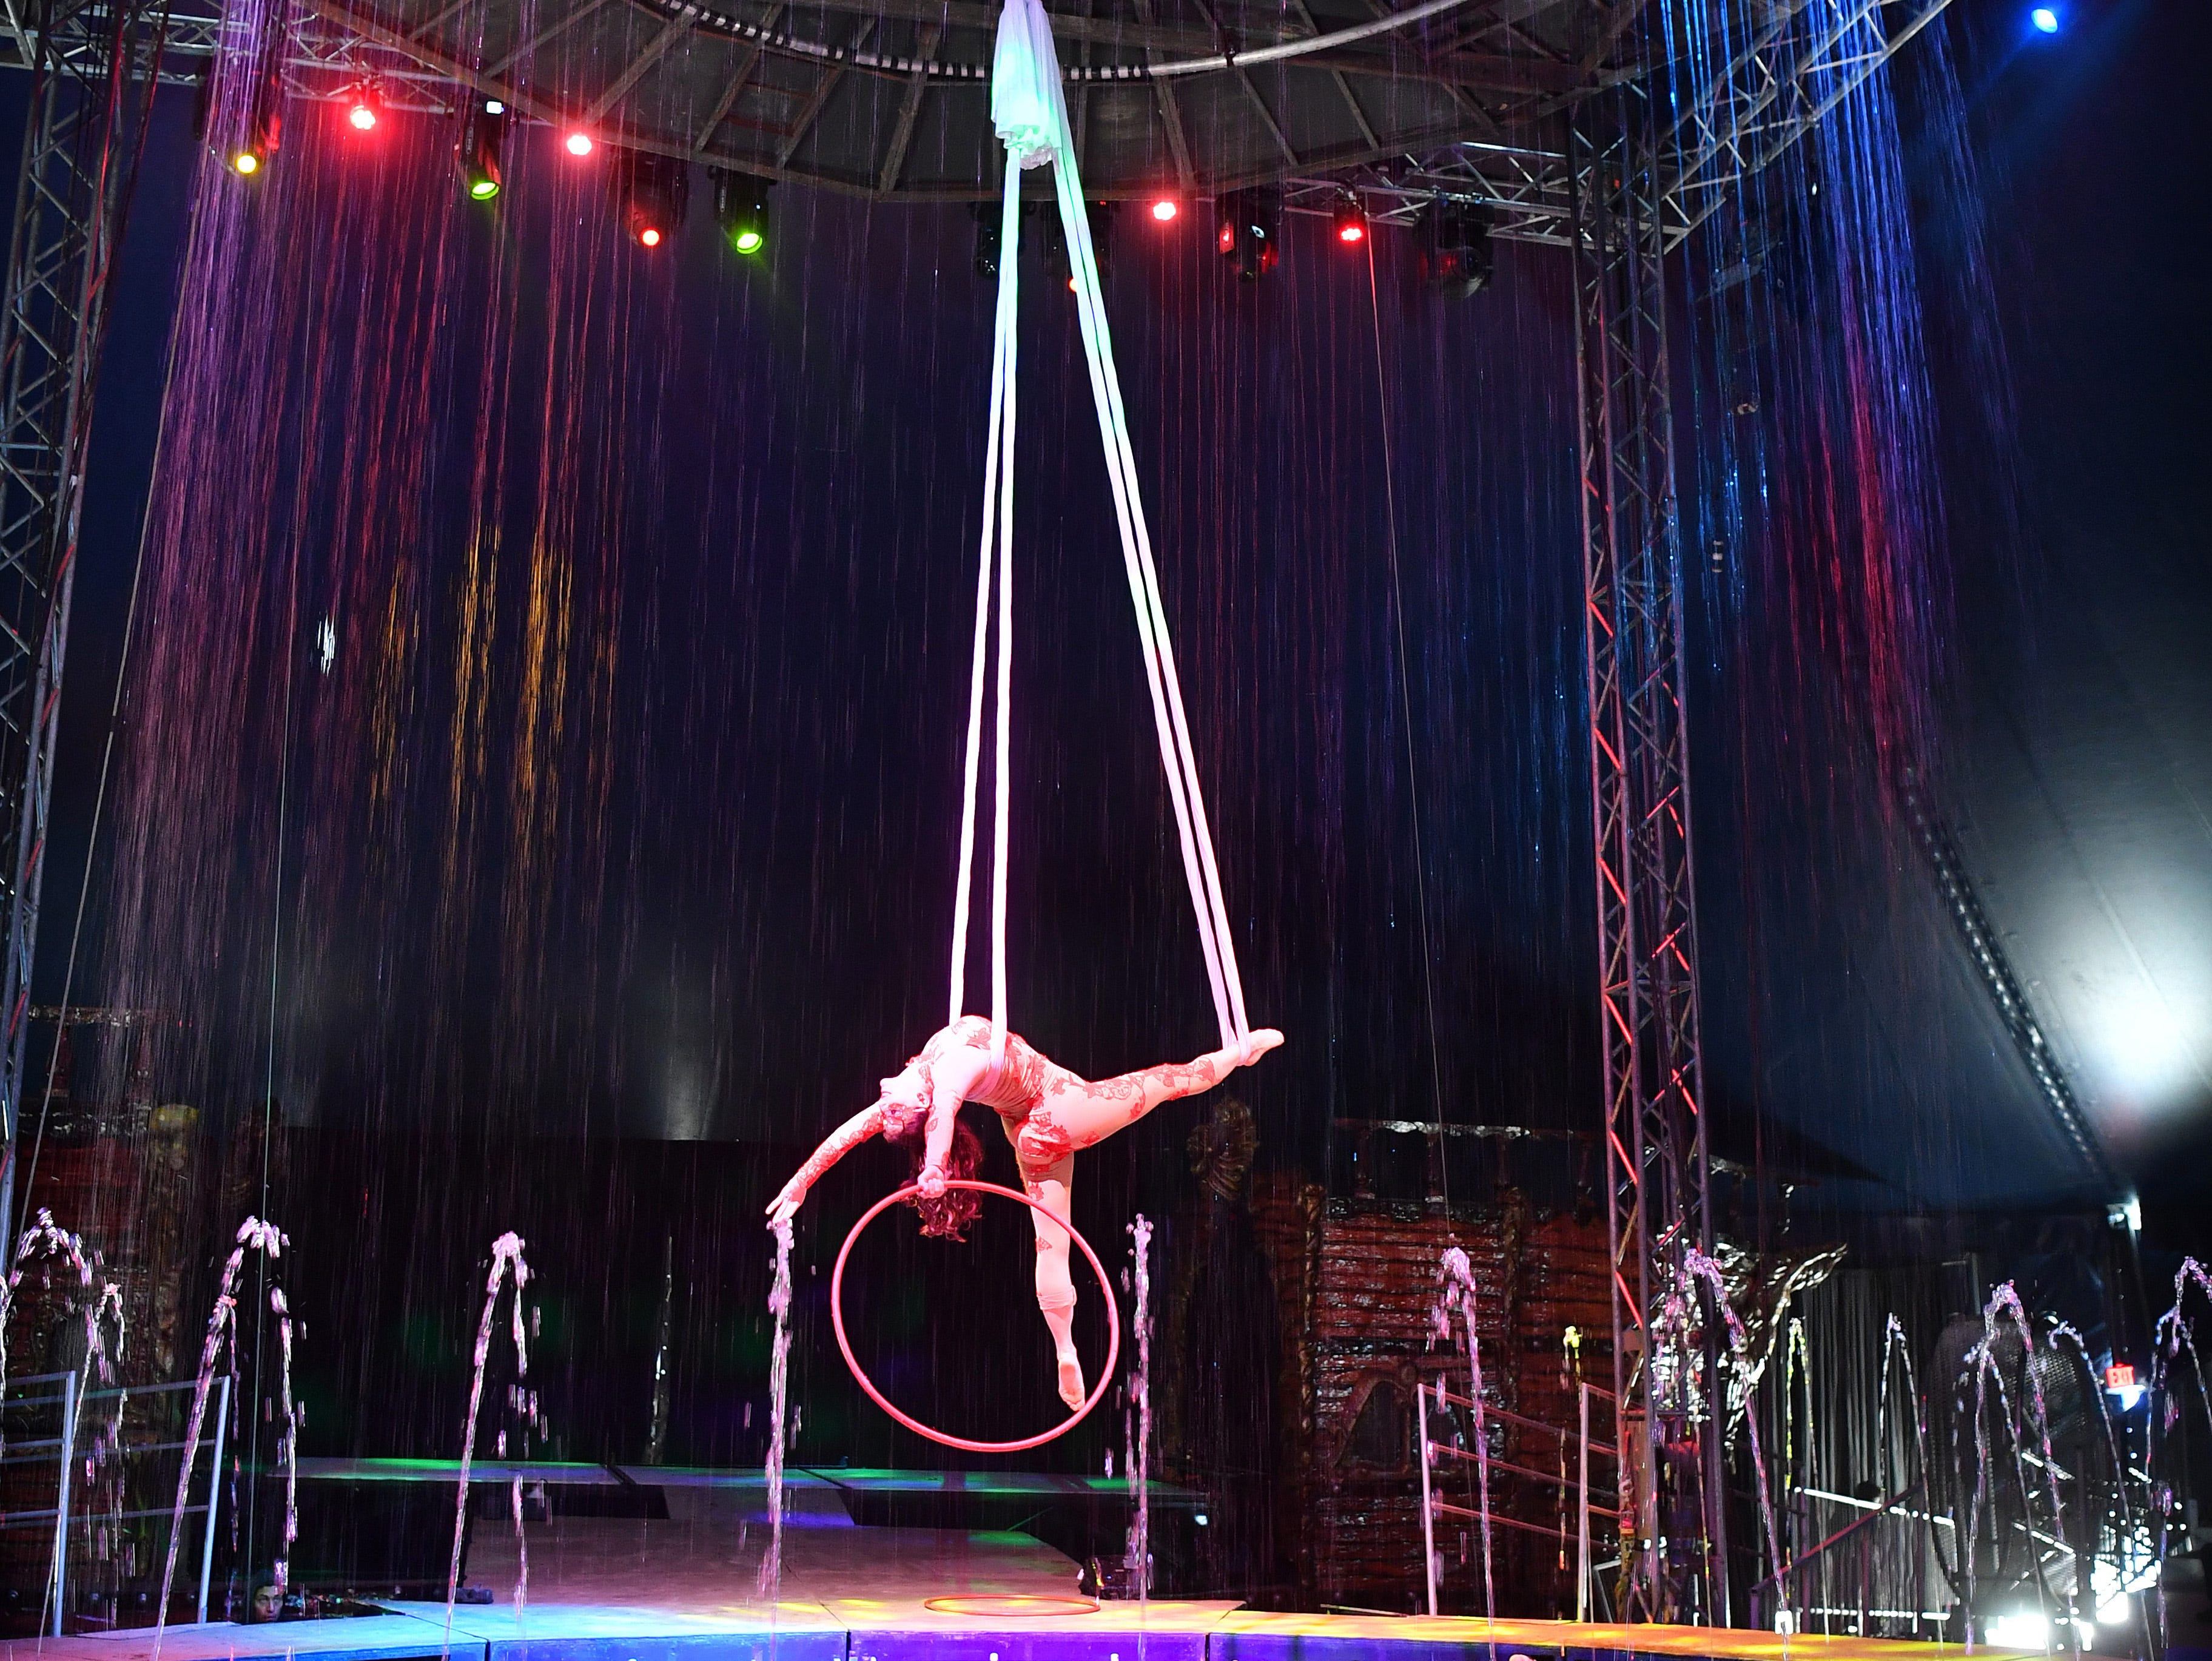 Elena Stefanova performs a dramatic aerial swing act as a cable lifts her high within a curtain a water during a performance with the Cirque Italia water circus Thursday.